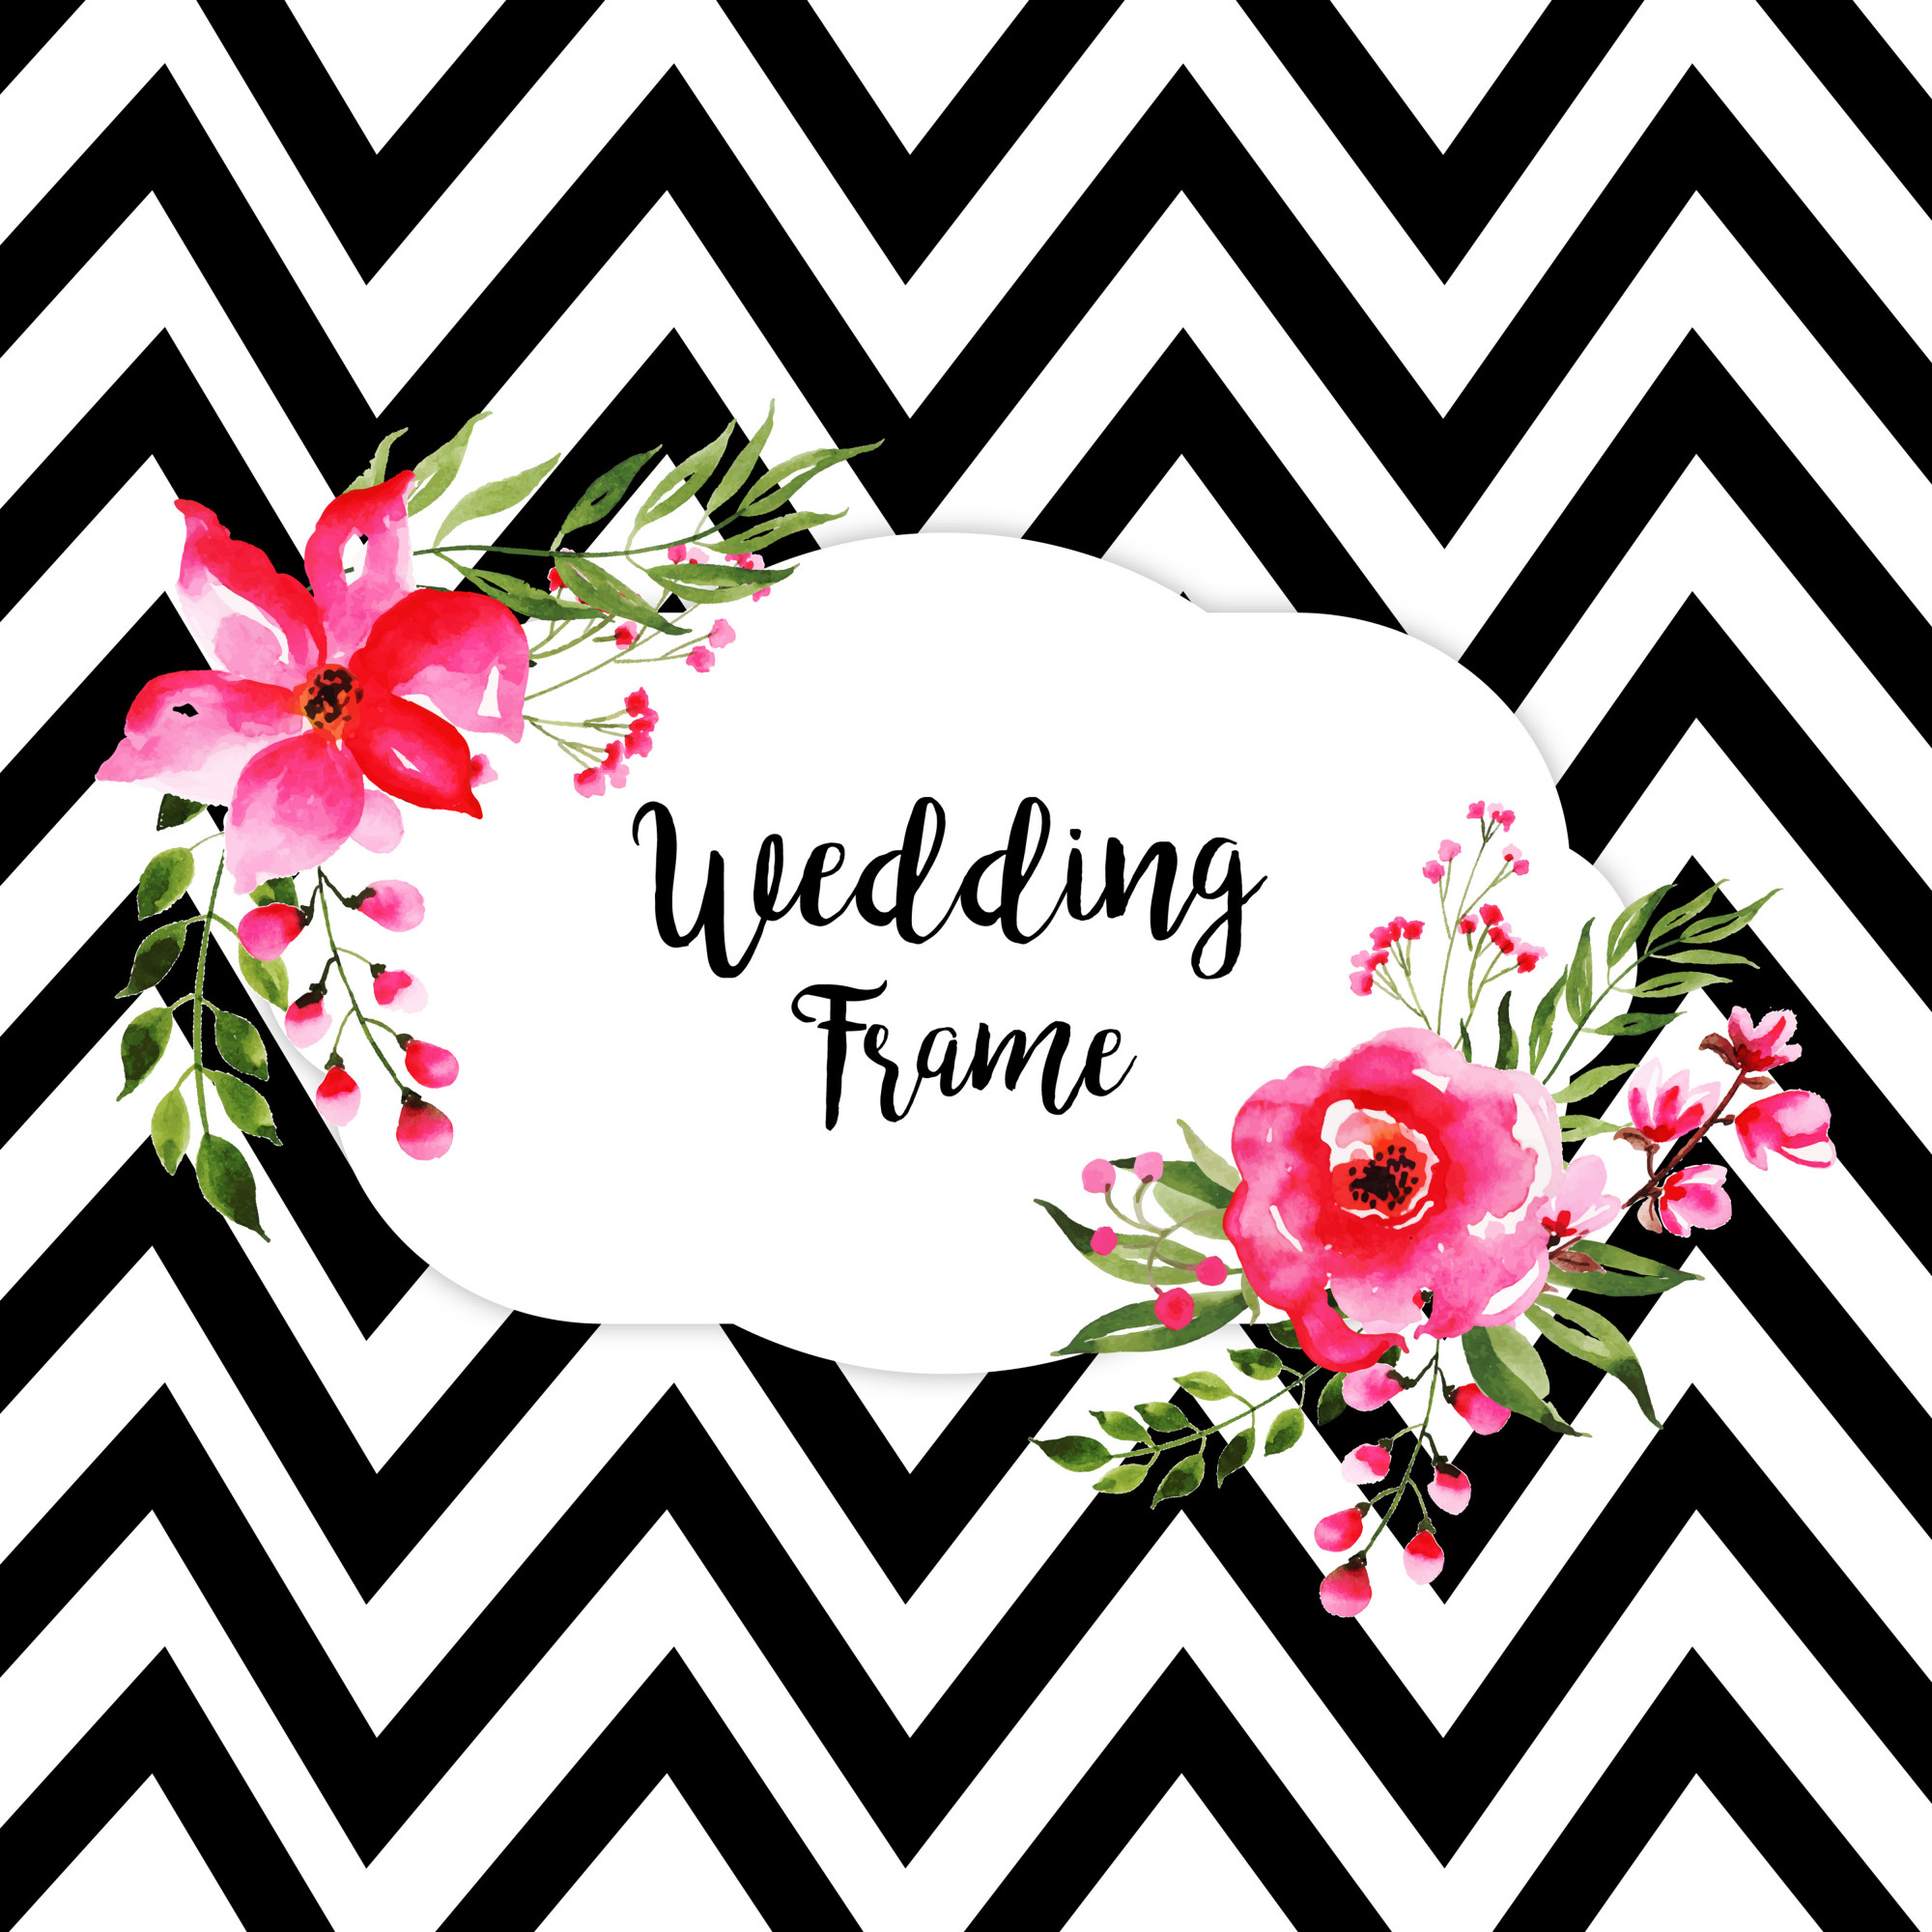 Watercolor Floral Wedding Frame Background With Stripes